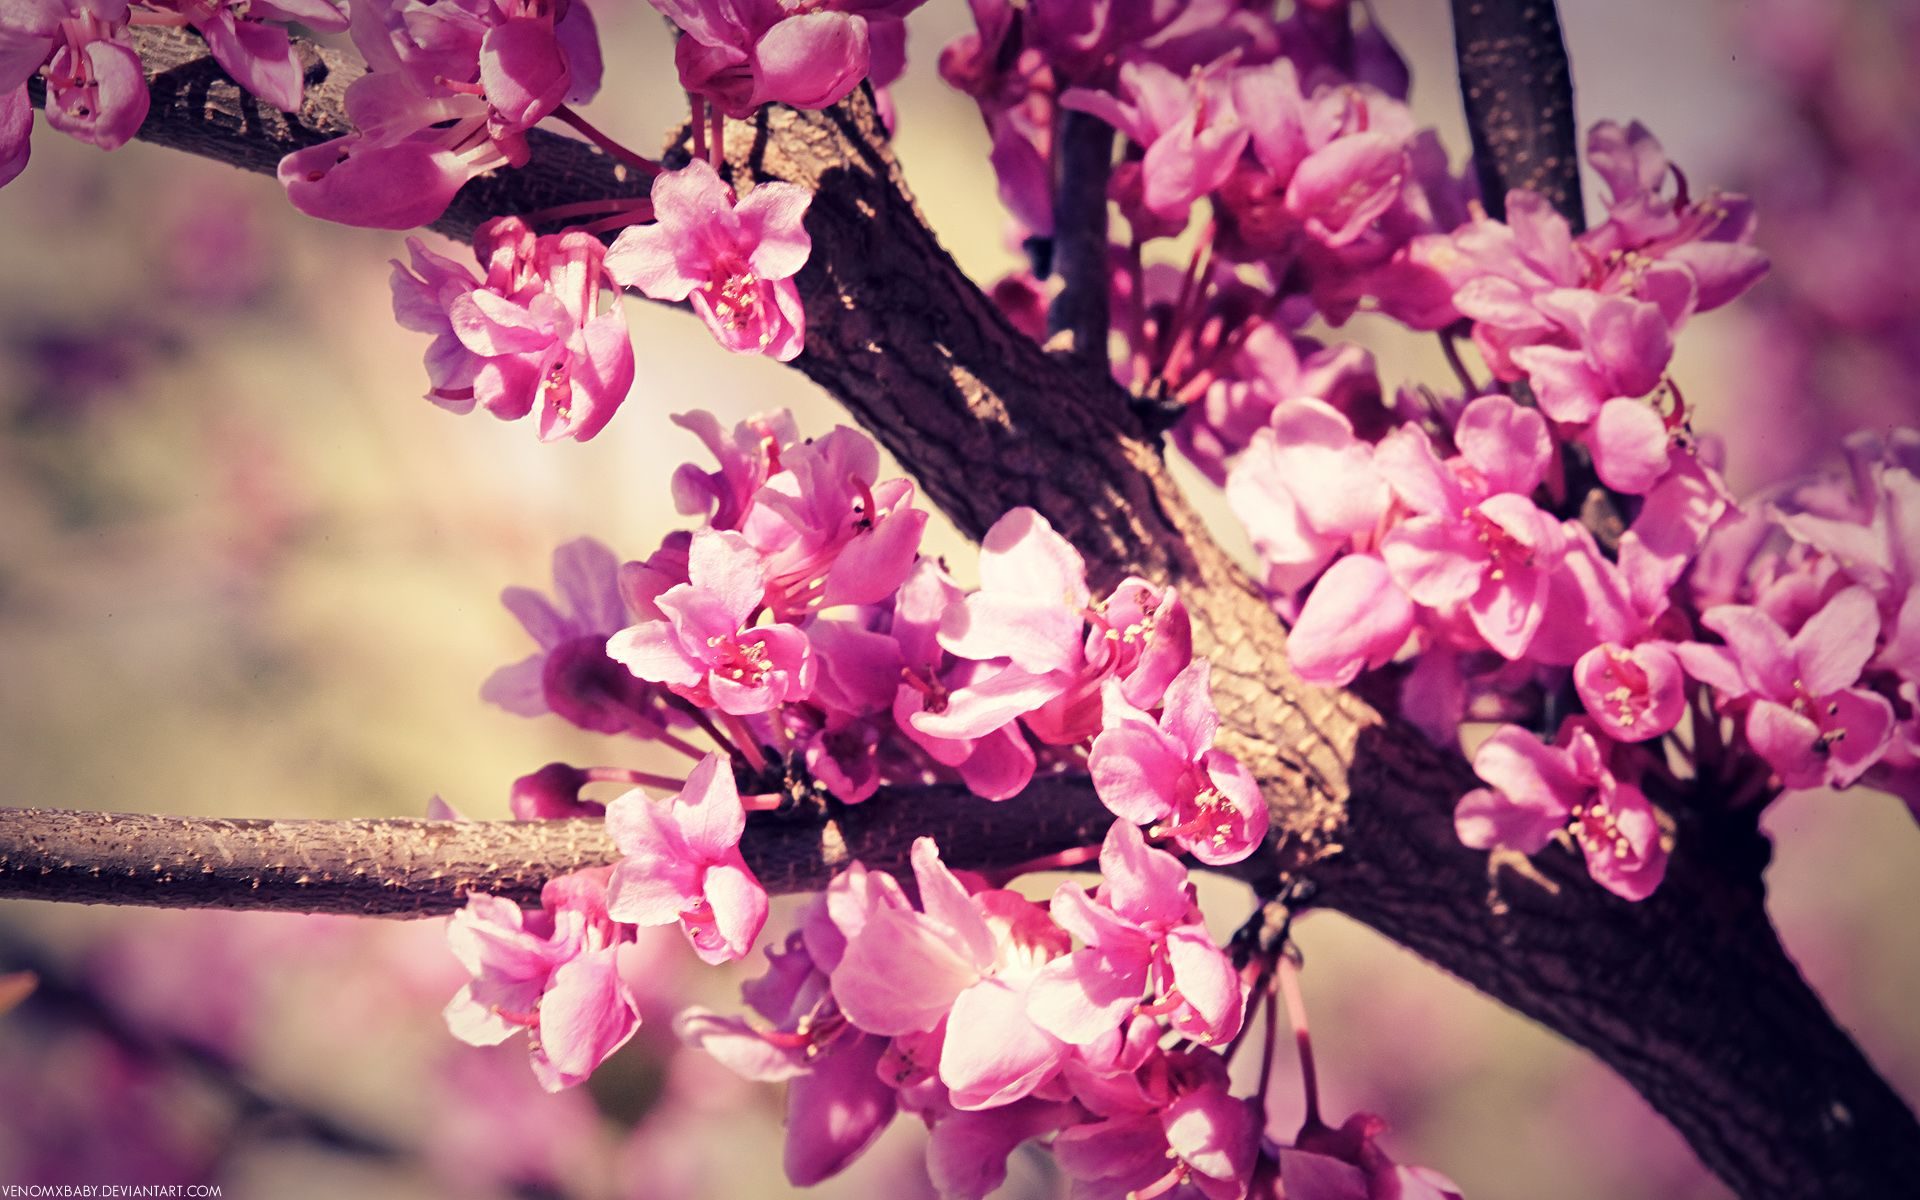 Vintage Flowers Tumblr Photography Flower Backgrounds